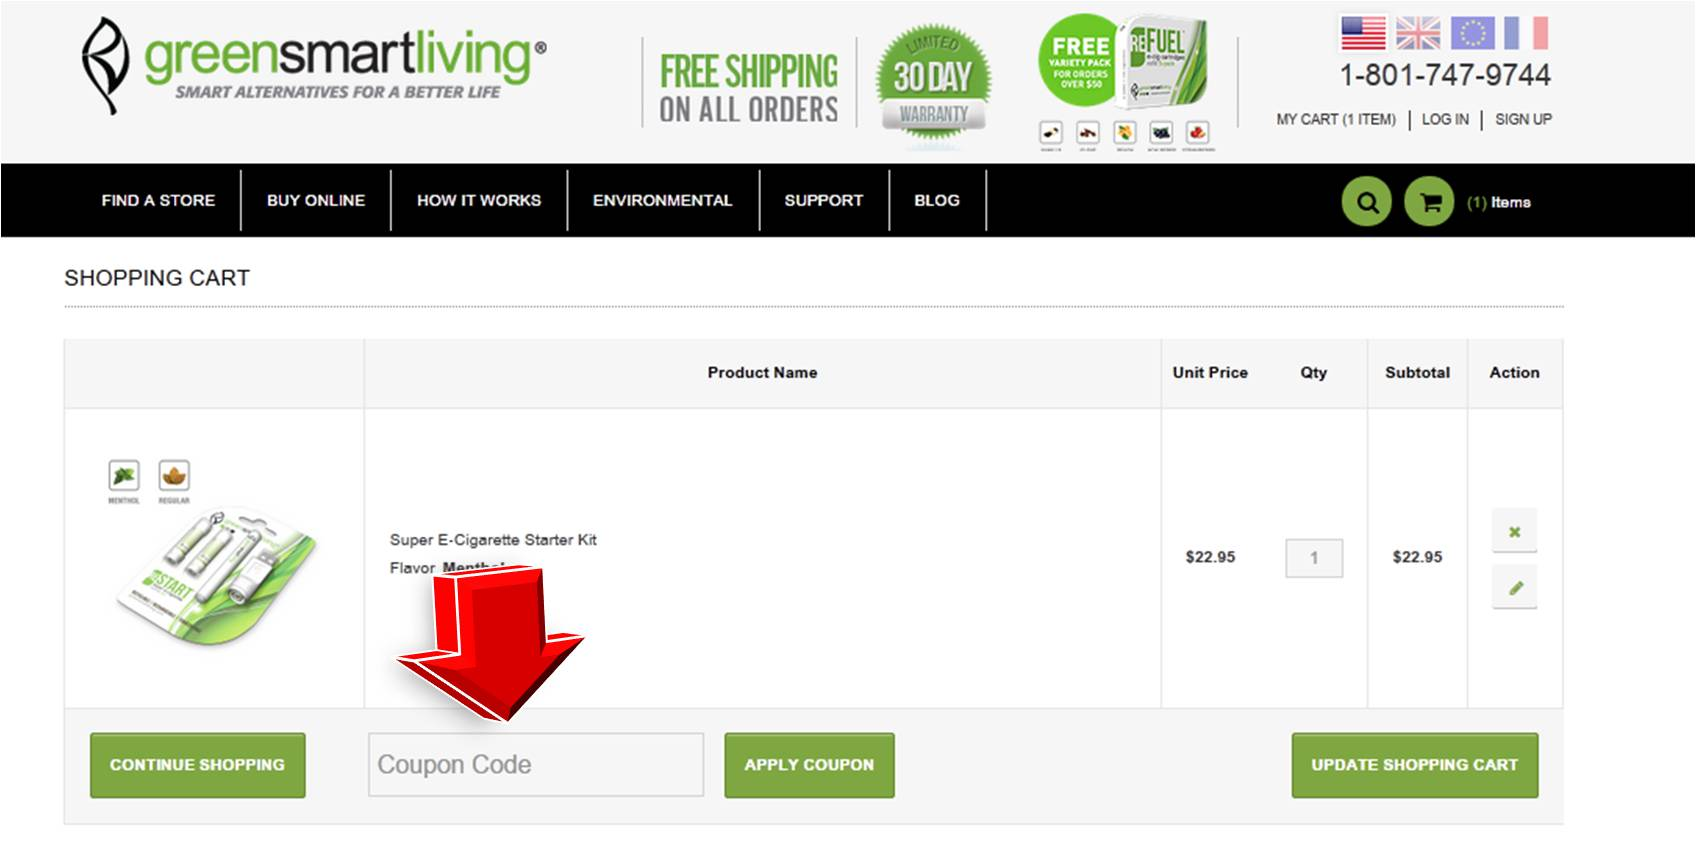 GreenSmartLiving is committed to creating a positive human impact, improving the quality of lives and protecting the environment by providing smart, simple and effective life improvement choices: Rechargeable electronic cigarette, Cartridge refills in HIGH and LOW nicotine strengths, Car & wall charger accessories, Carrying case, Hangover prevention supplement.